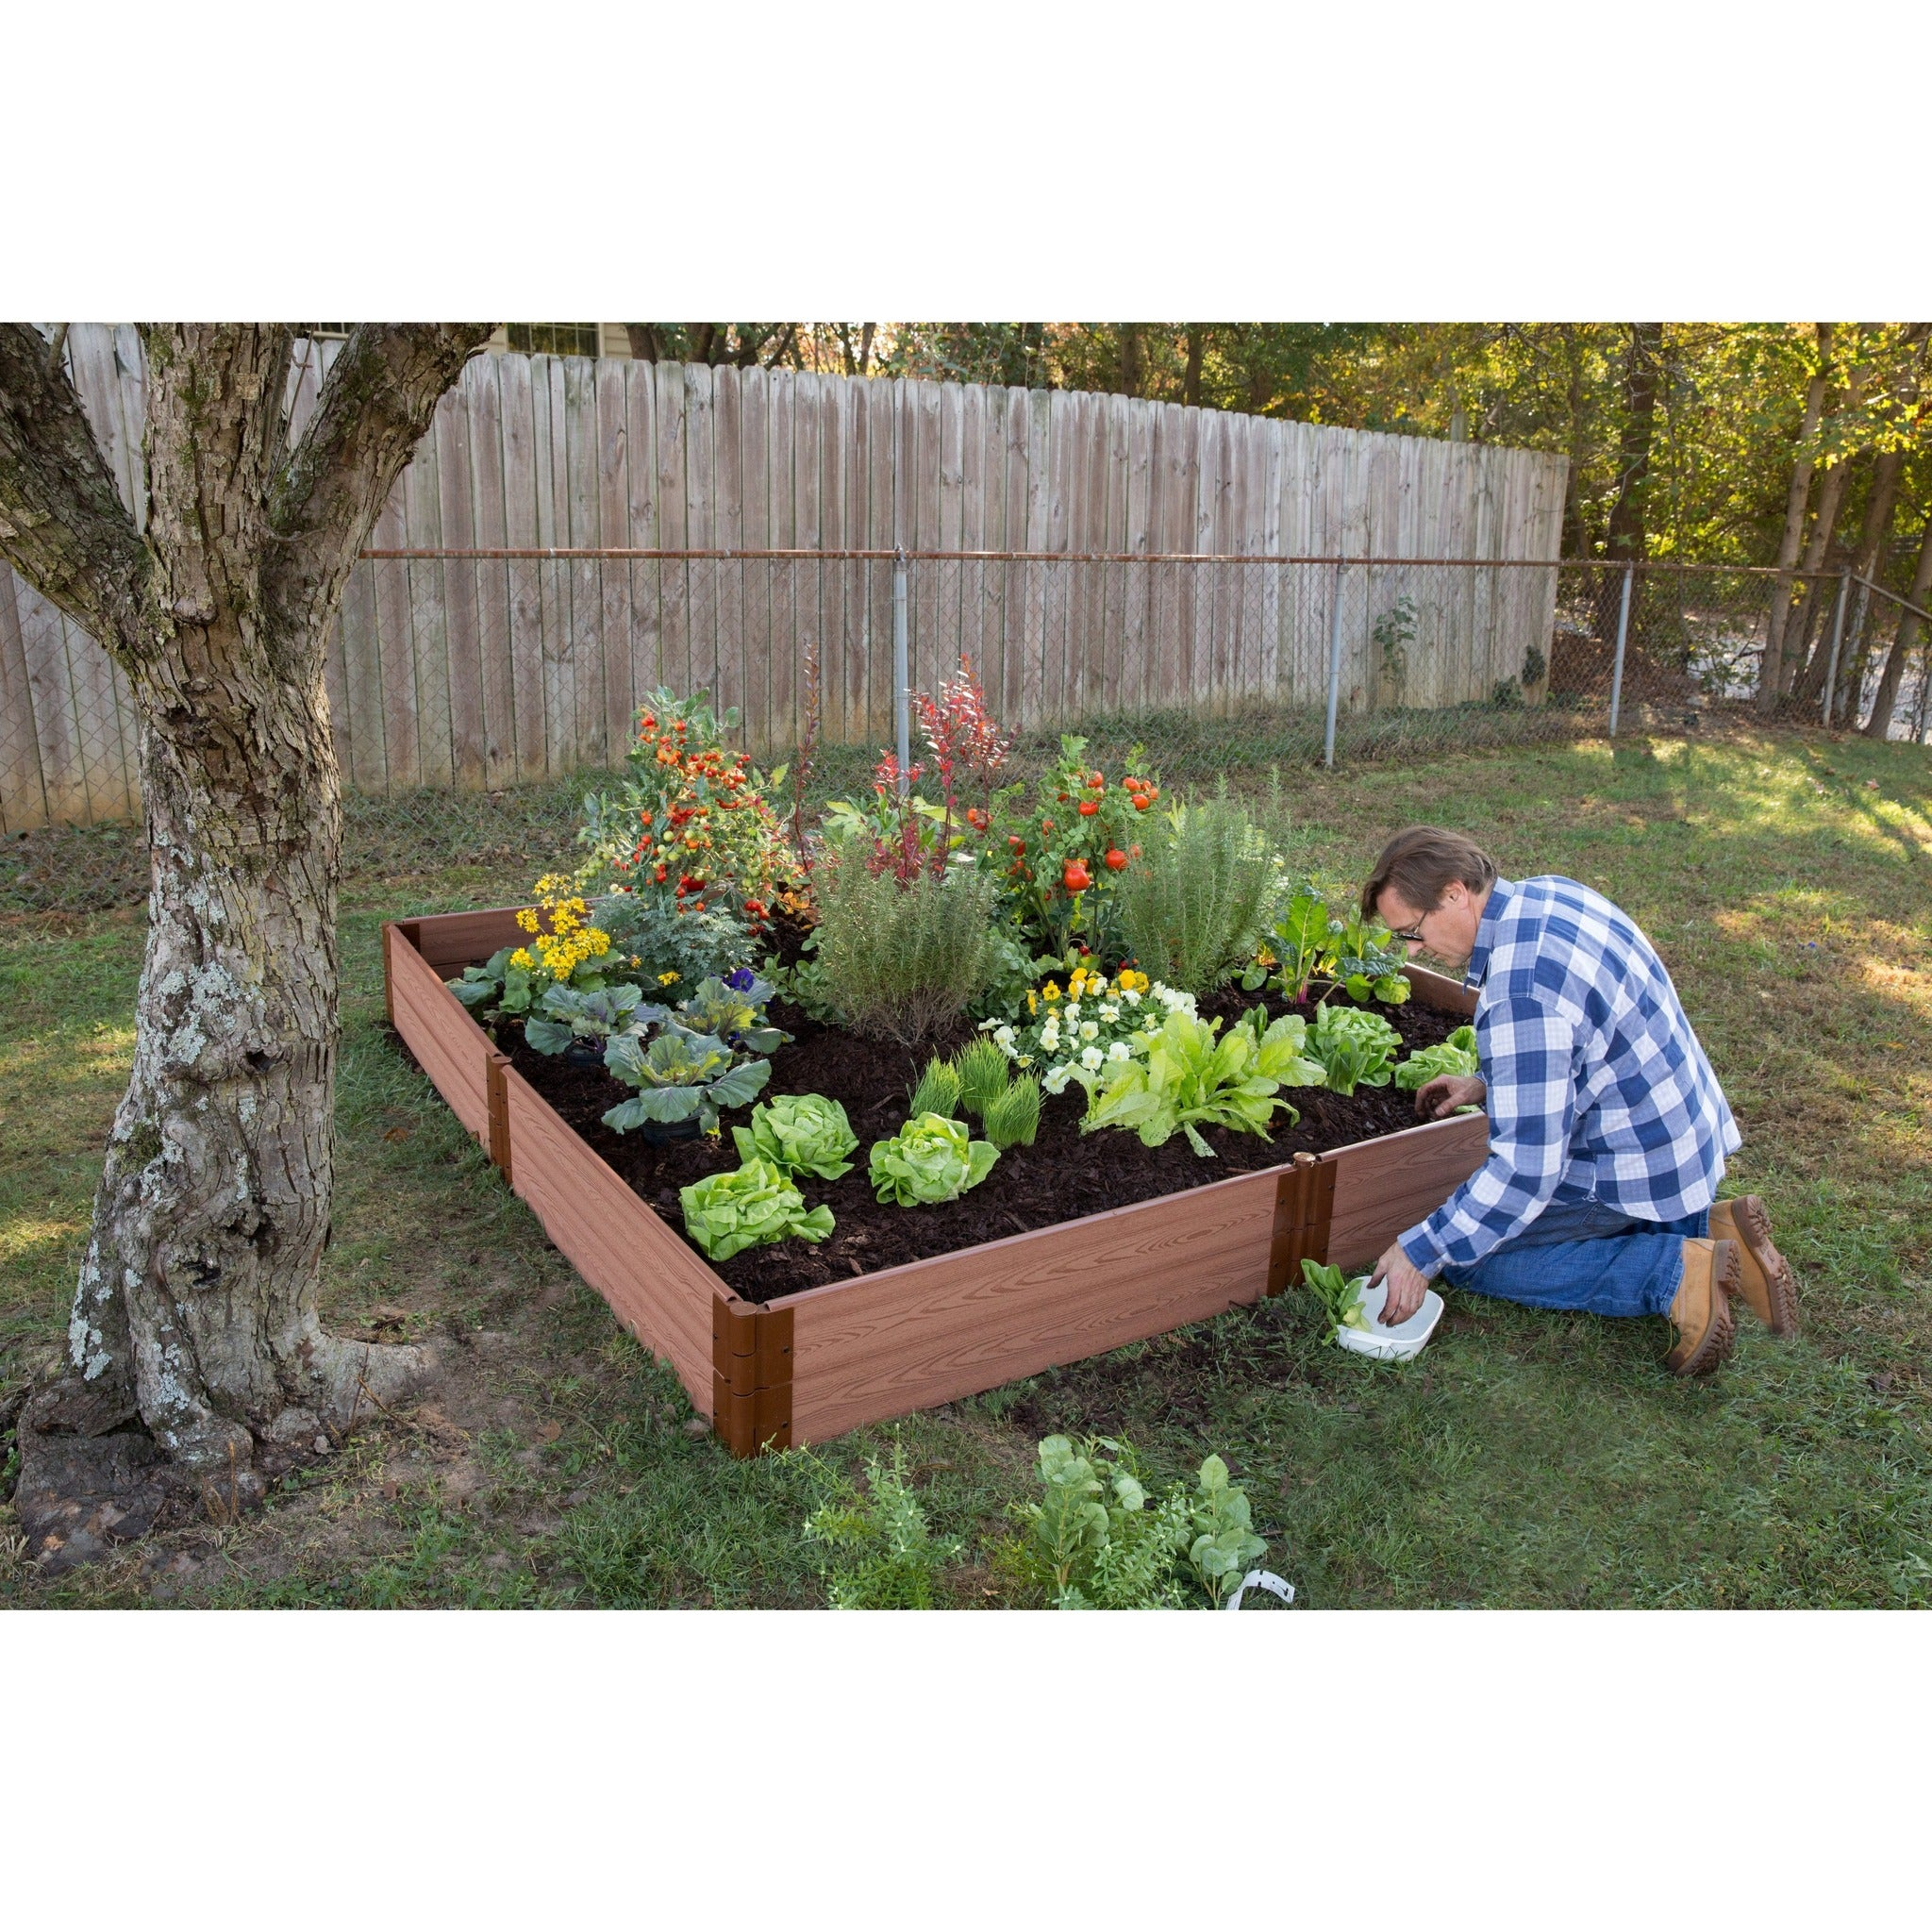 Beau ... Raised Bed Kit, Frame It All Composite Classic Sienna In Garden Setting  Man Kneeling Planting